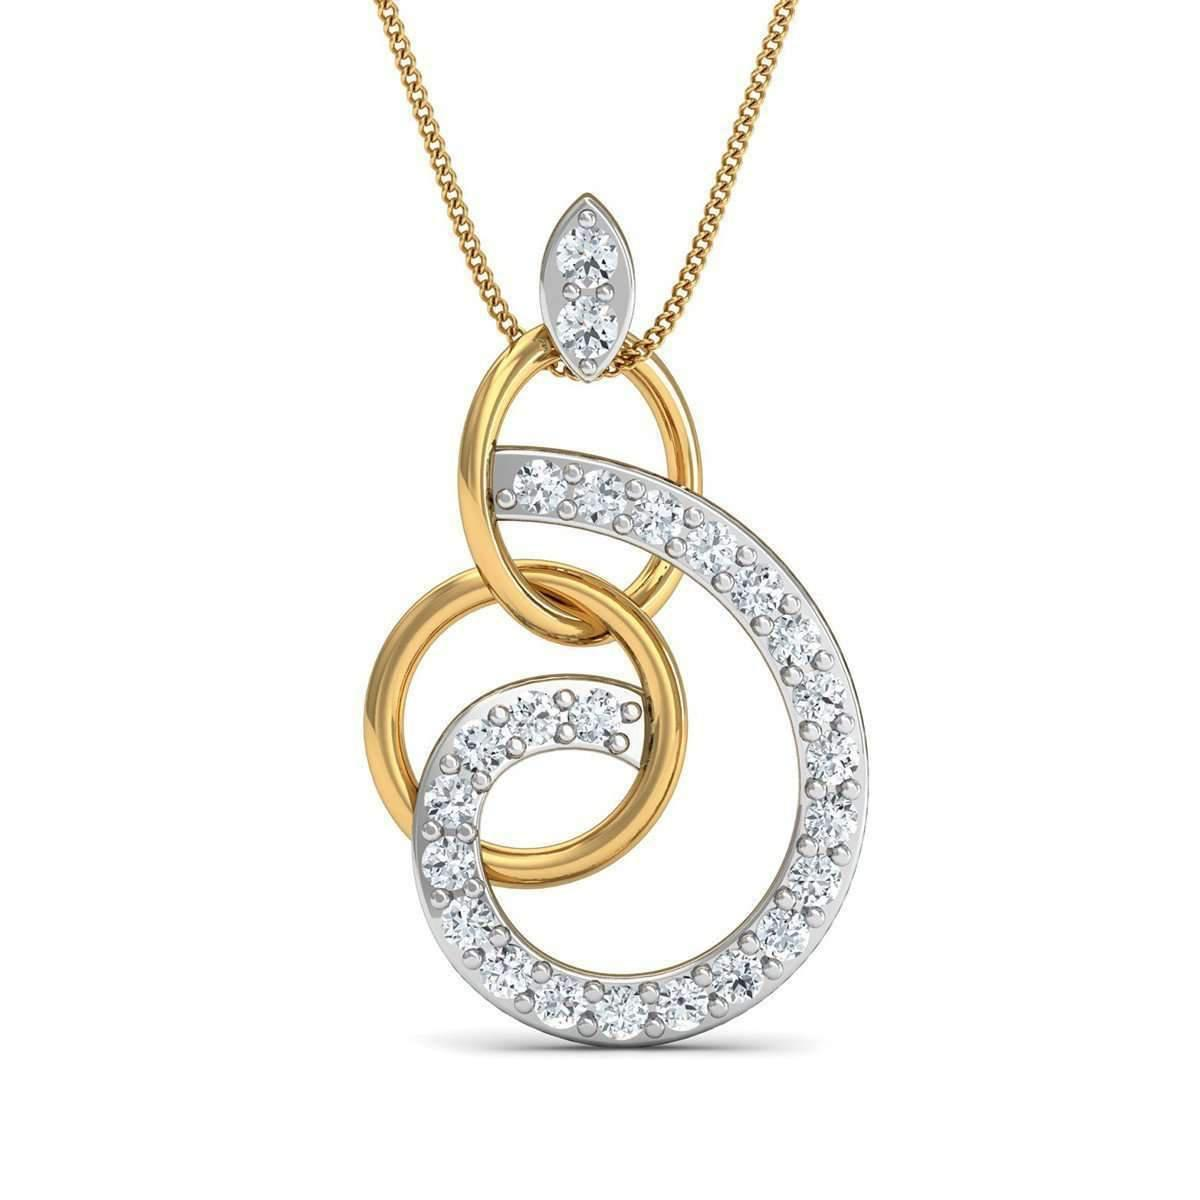 Diamoire Jewels Hand-carved Quality 10kt Rose Gold and Diamond Pendant in a Pave Setting BSOy3q1